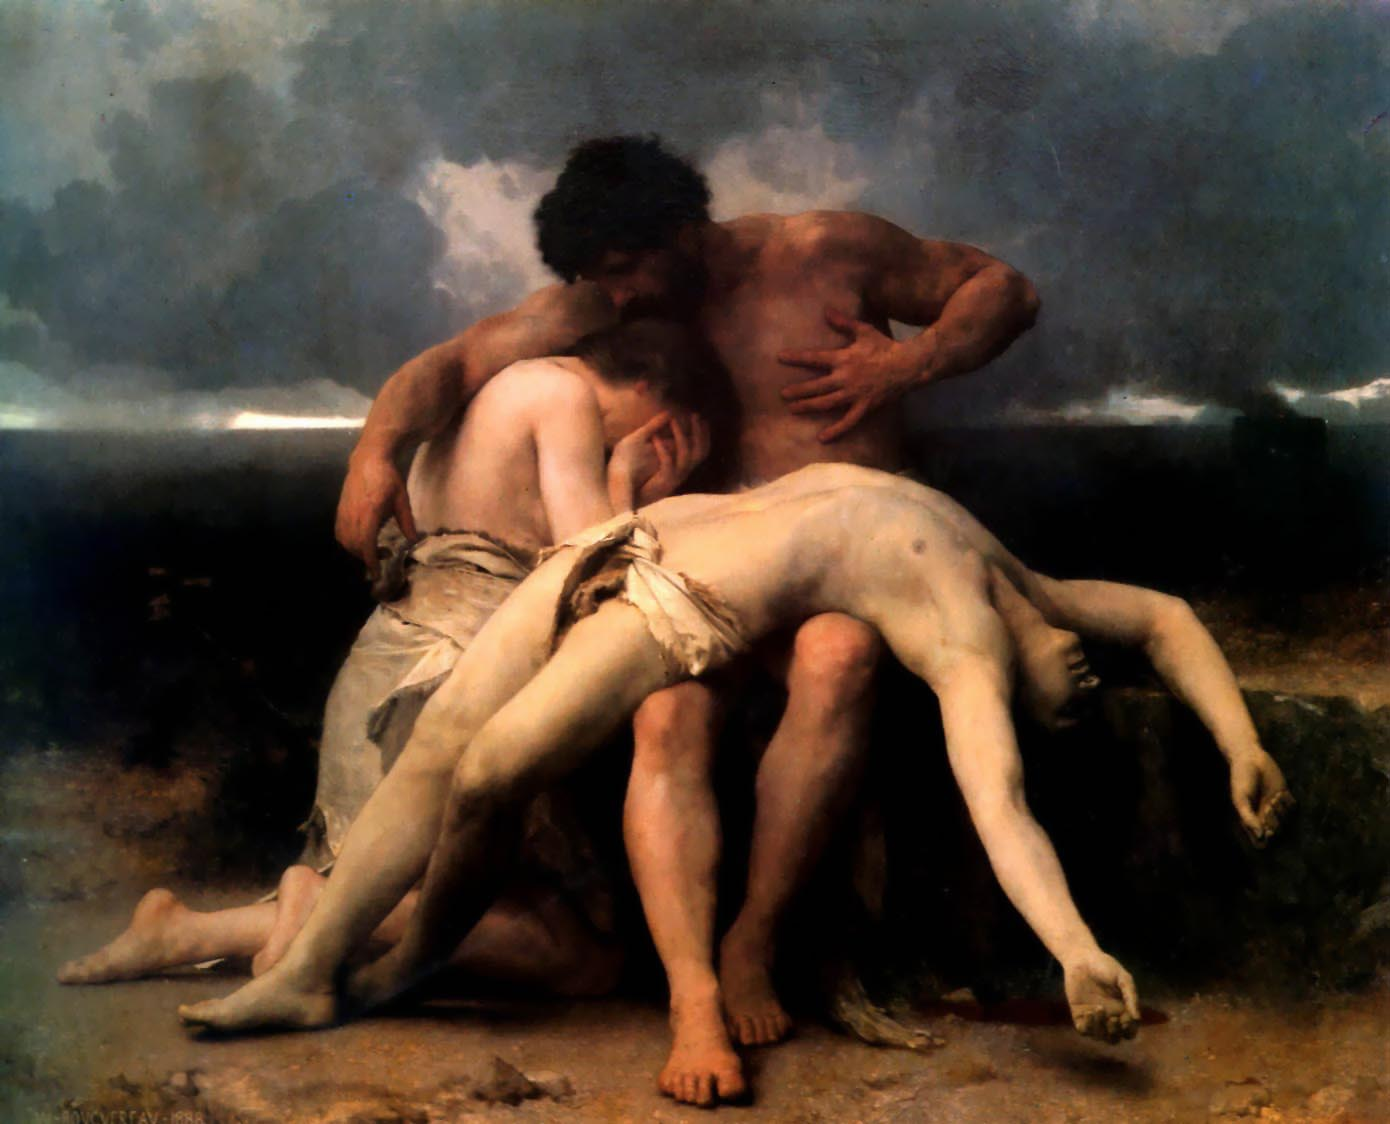 William Bouguereau (1825-1905)  Premier Deuil [The First Mourning]  Oil on canvas, 1888  79 7/8 x 99 1/8 inches (203 x 252 cm)  Museo Nacional de Bellas Artes, Buenos Aires